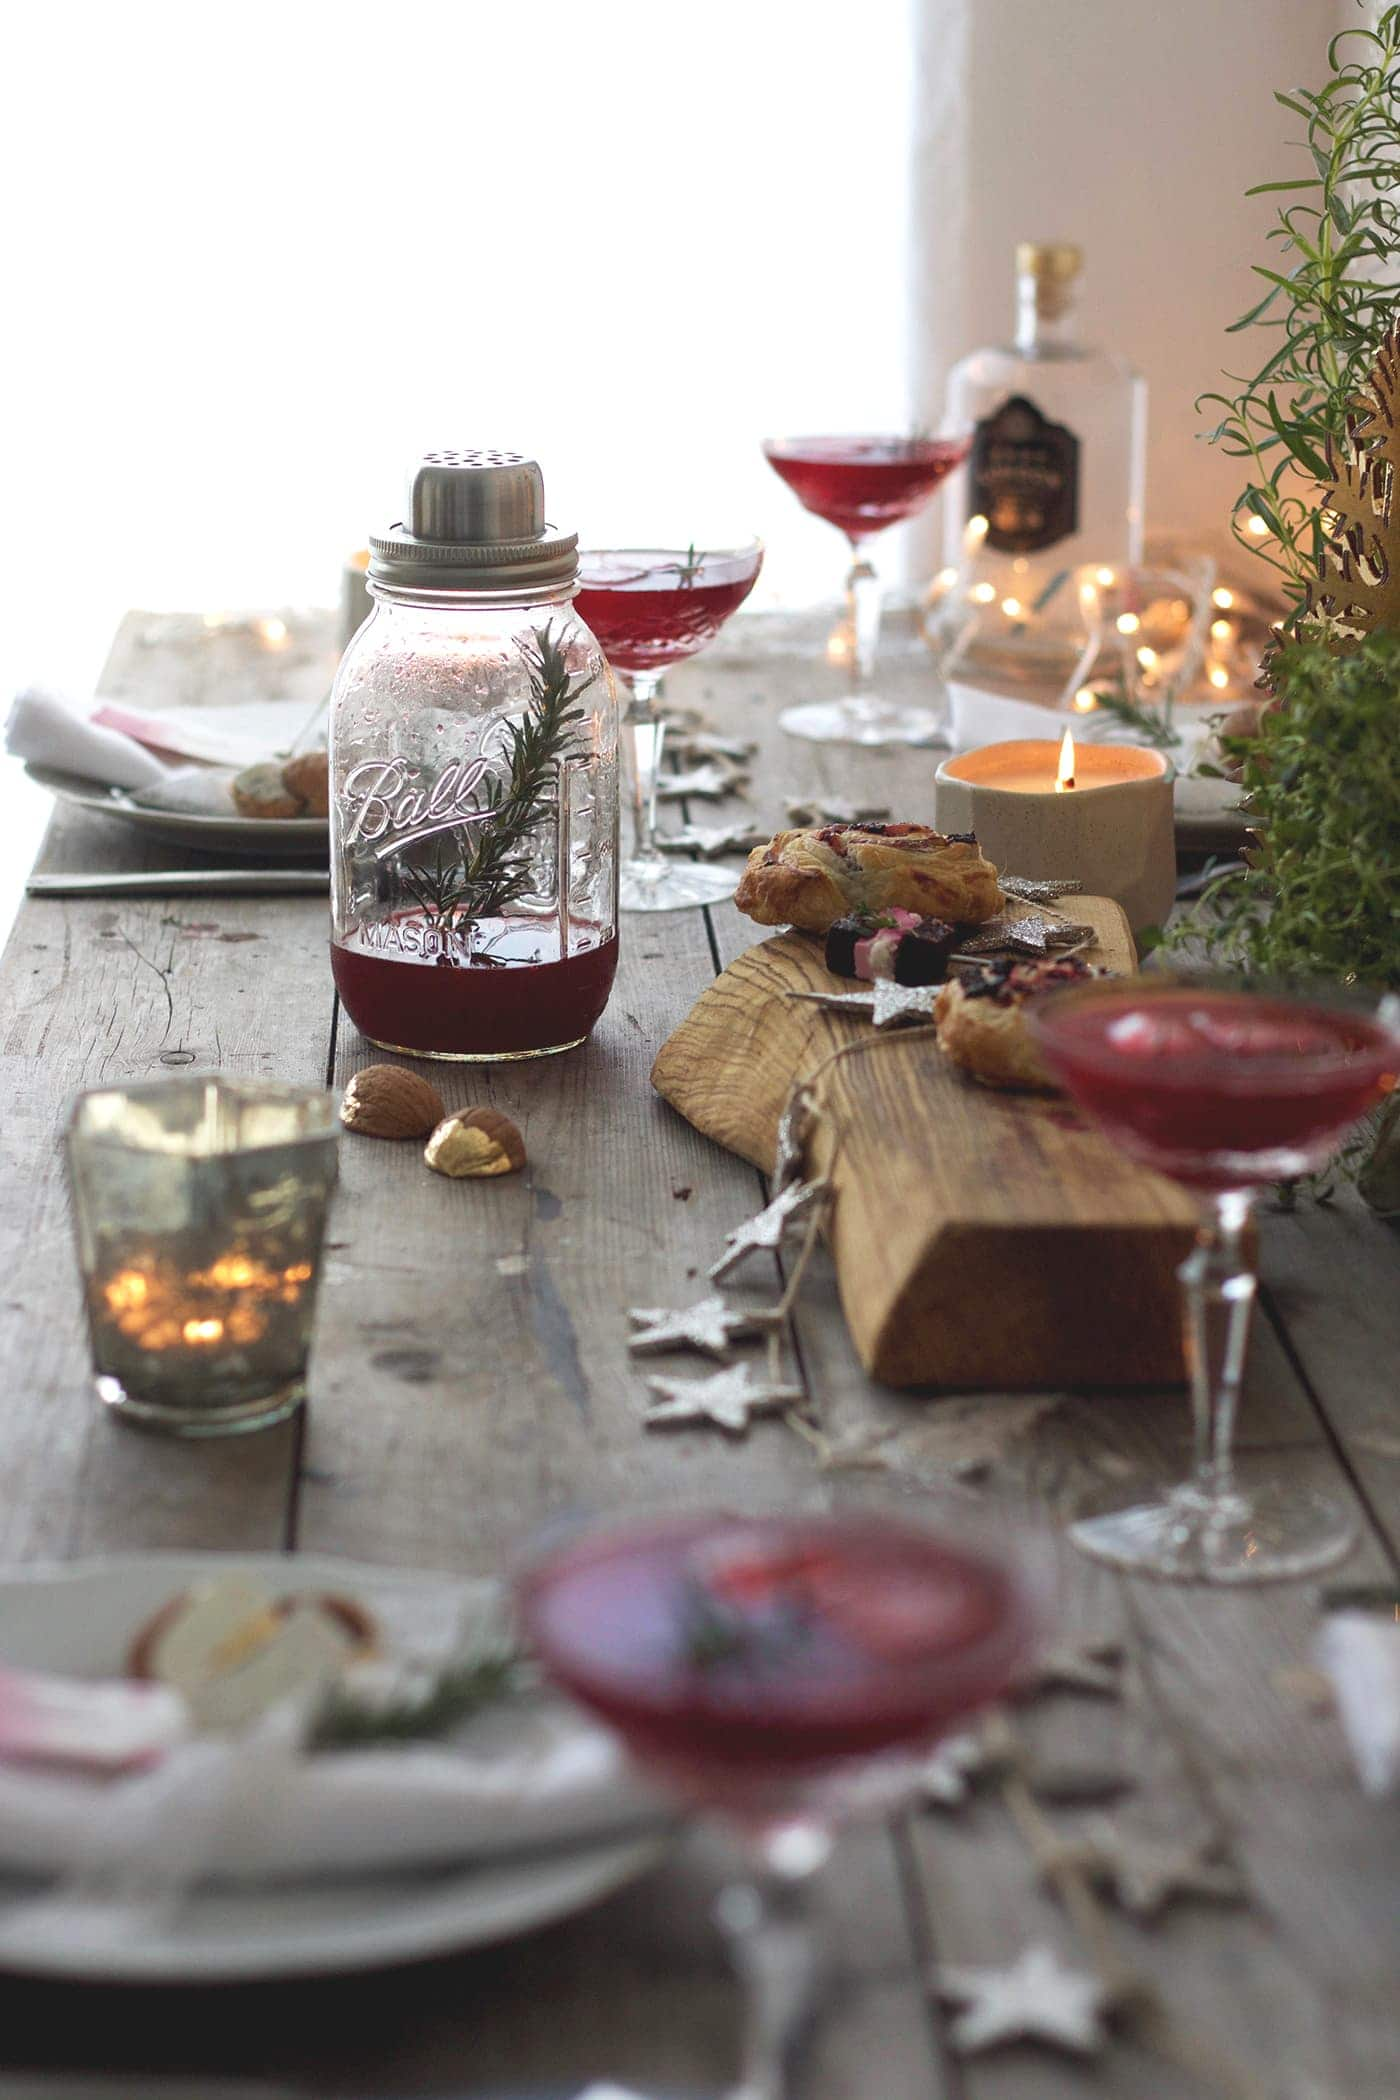 12 styled days of Christmas with West Elm | festive table decor | lobster and swan